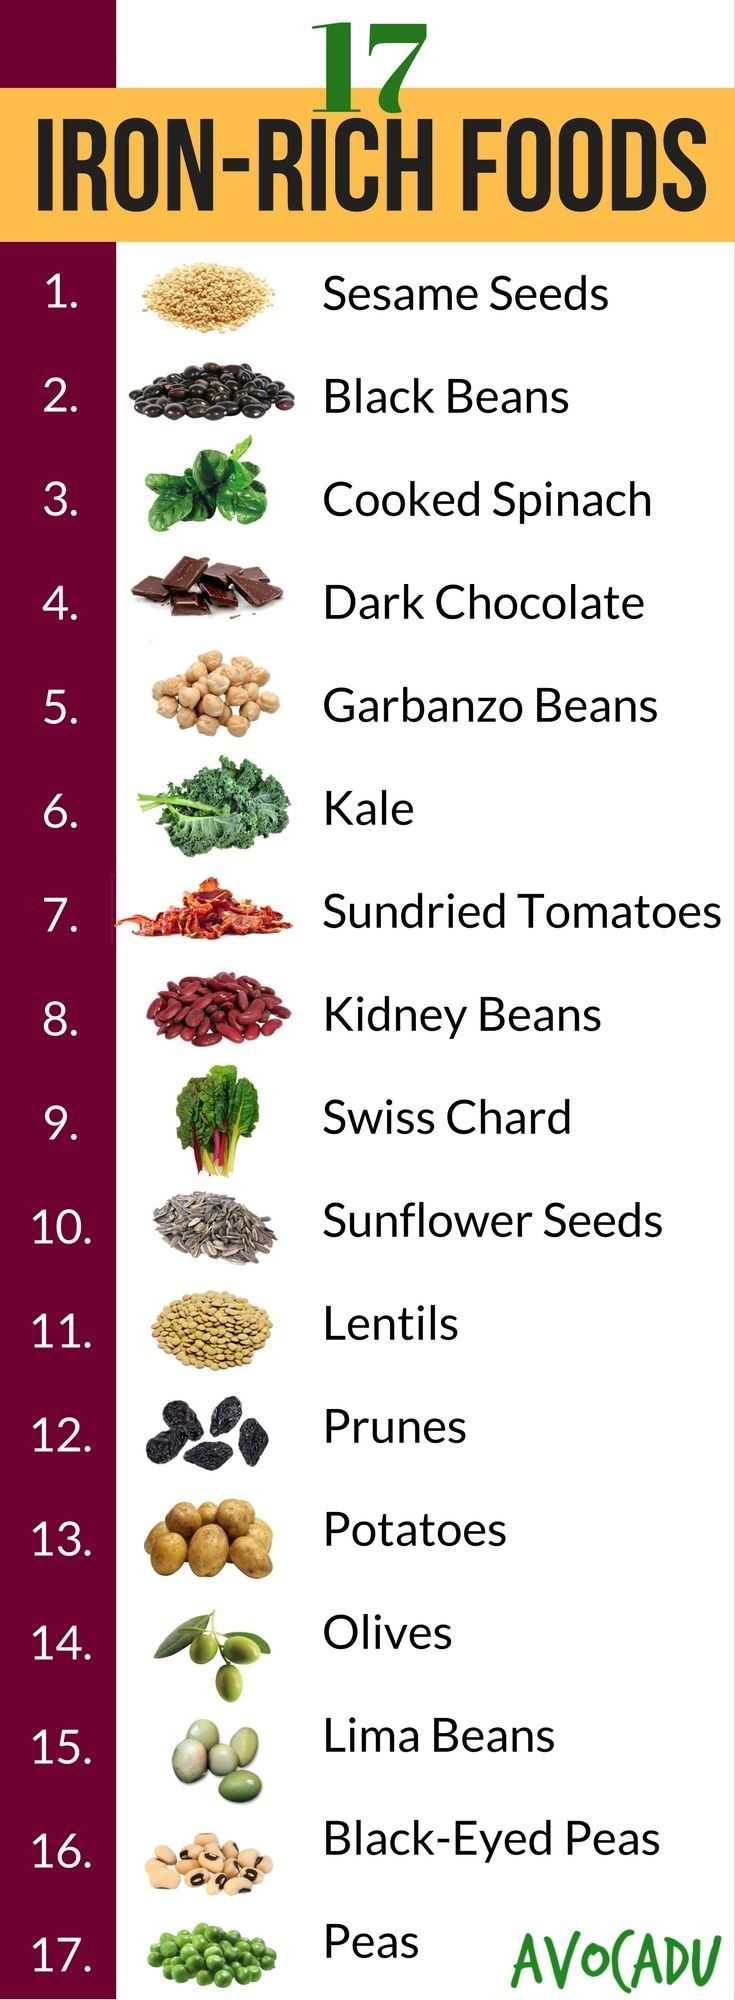 These healthy foods are all very high in iron, a food that is lacking in most diets and especially for women.